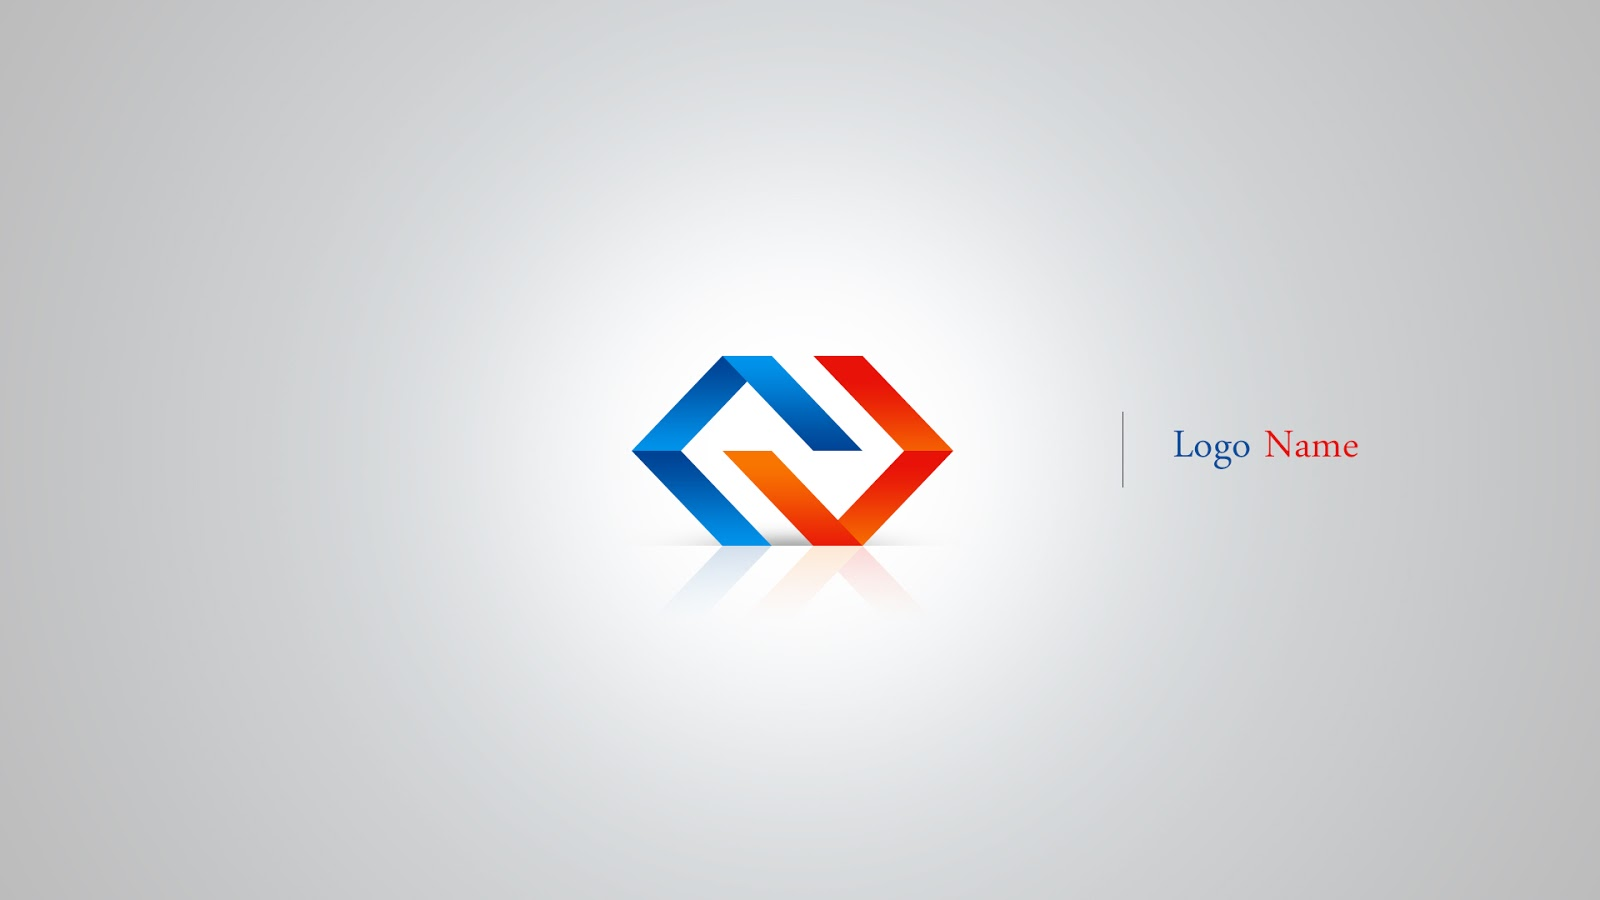 How to make logo design your own logo in photoshop for Draw your own logo